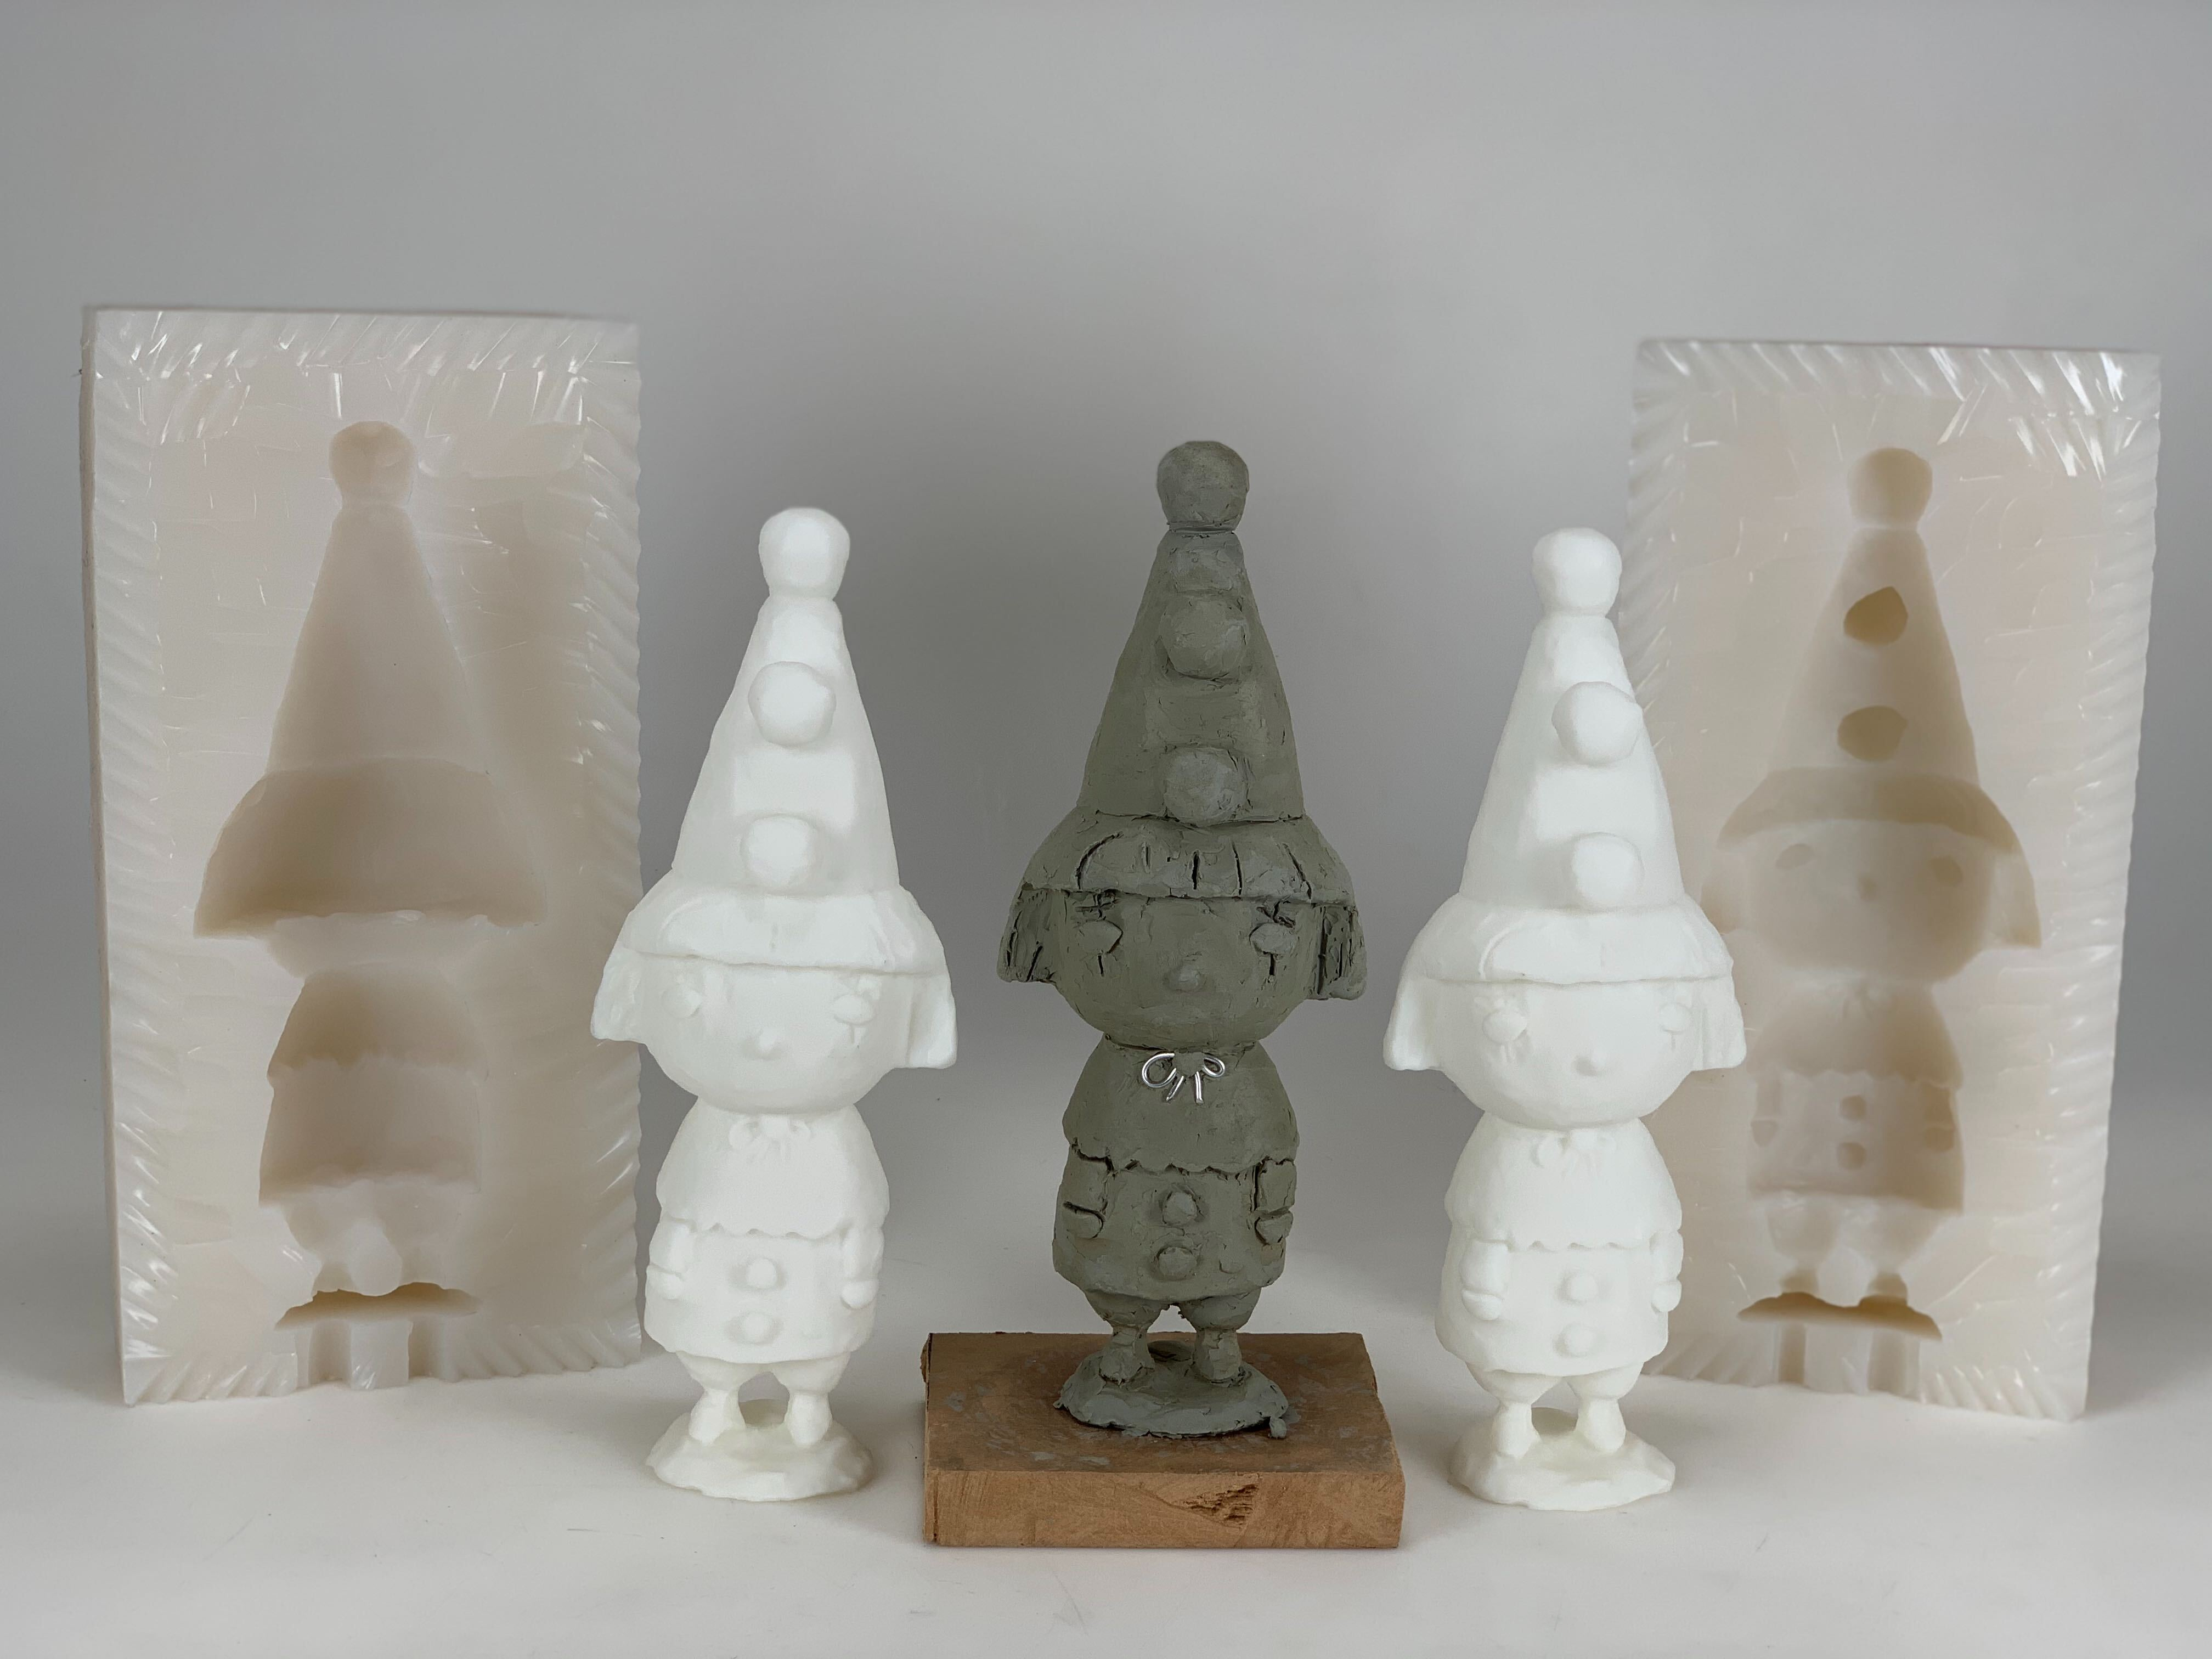 a clay sculpture is 3d scanned to produce 3d printed copy replicas and a 2-part silicone mold for resin casting sculpture copy replicas